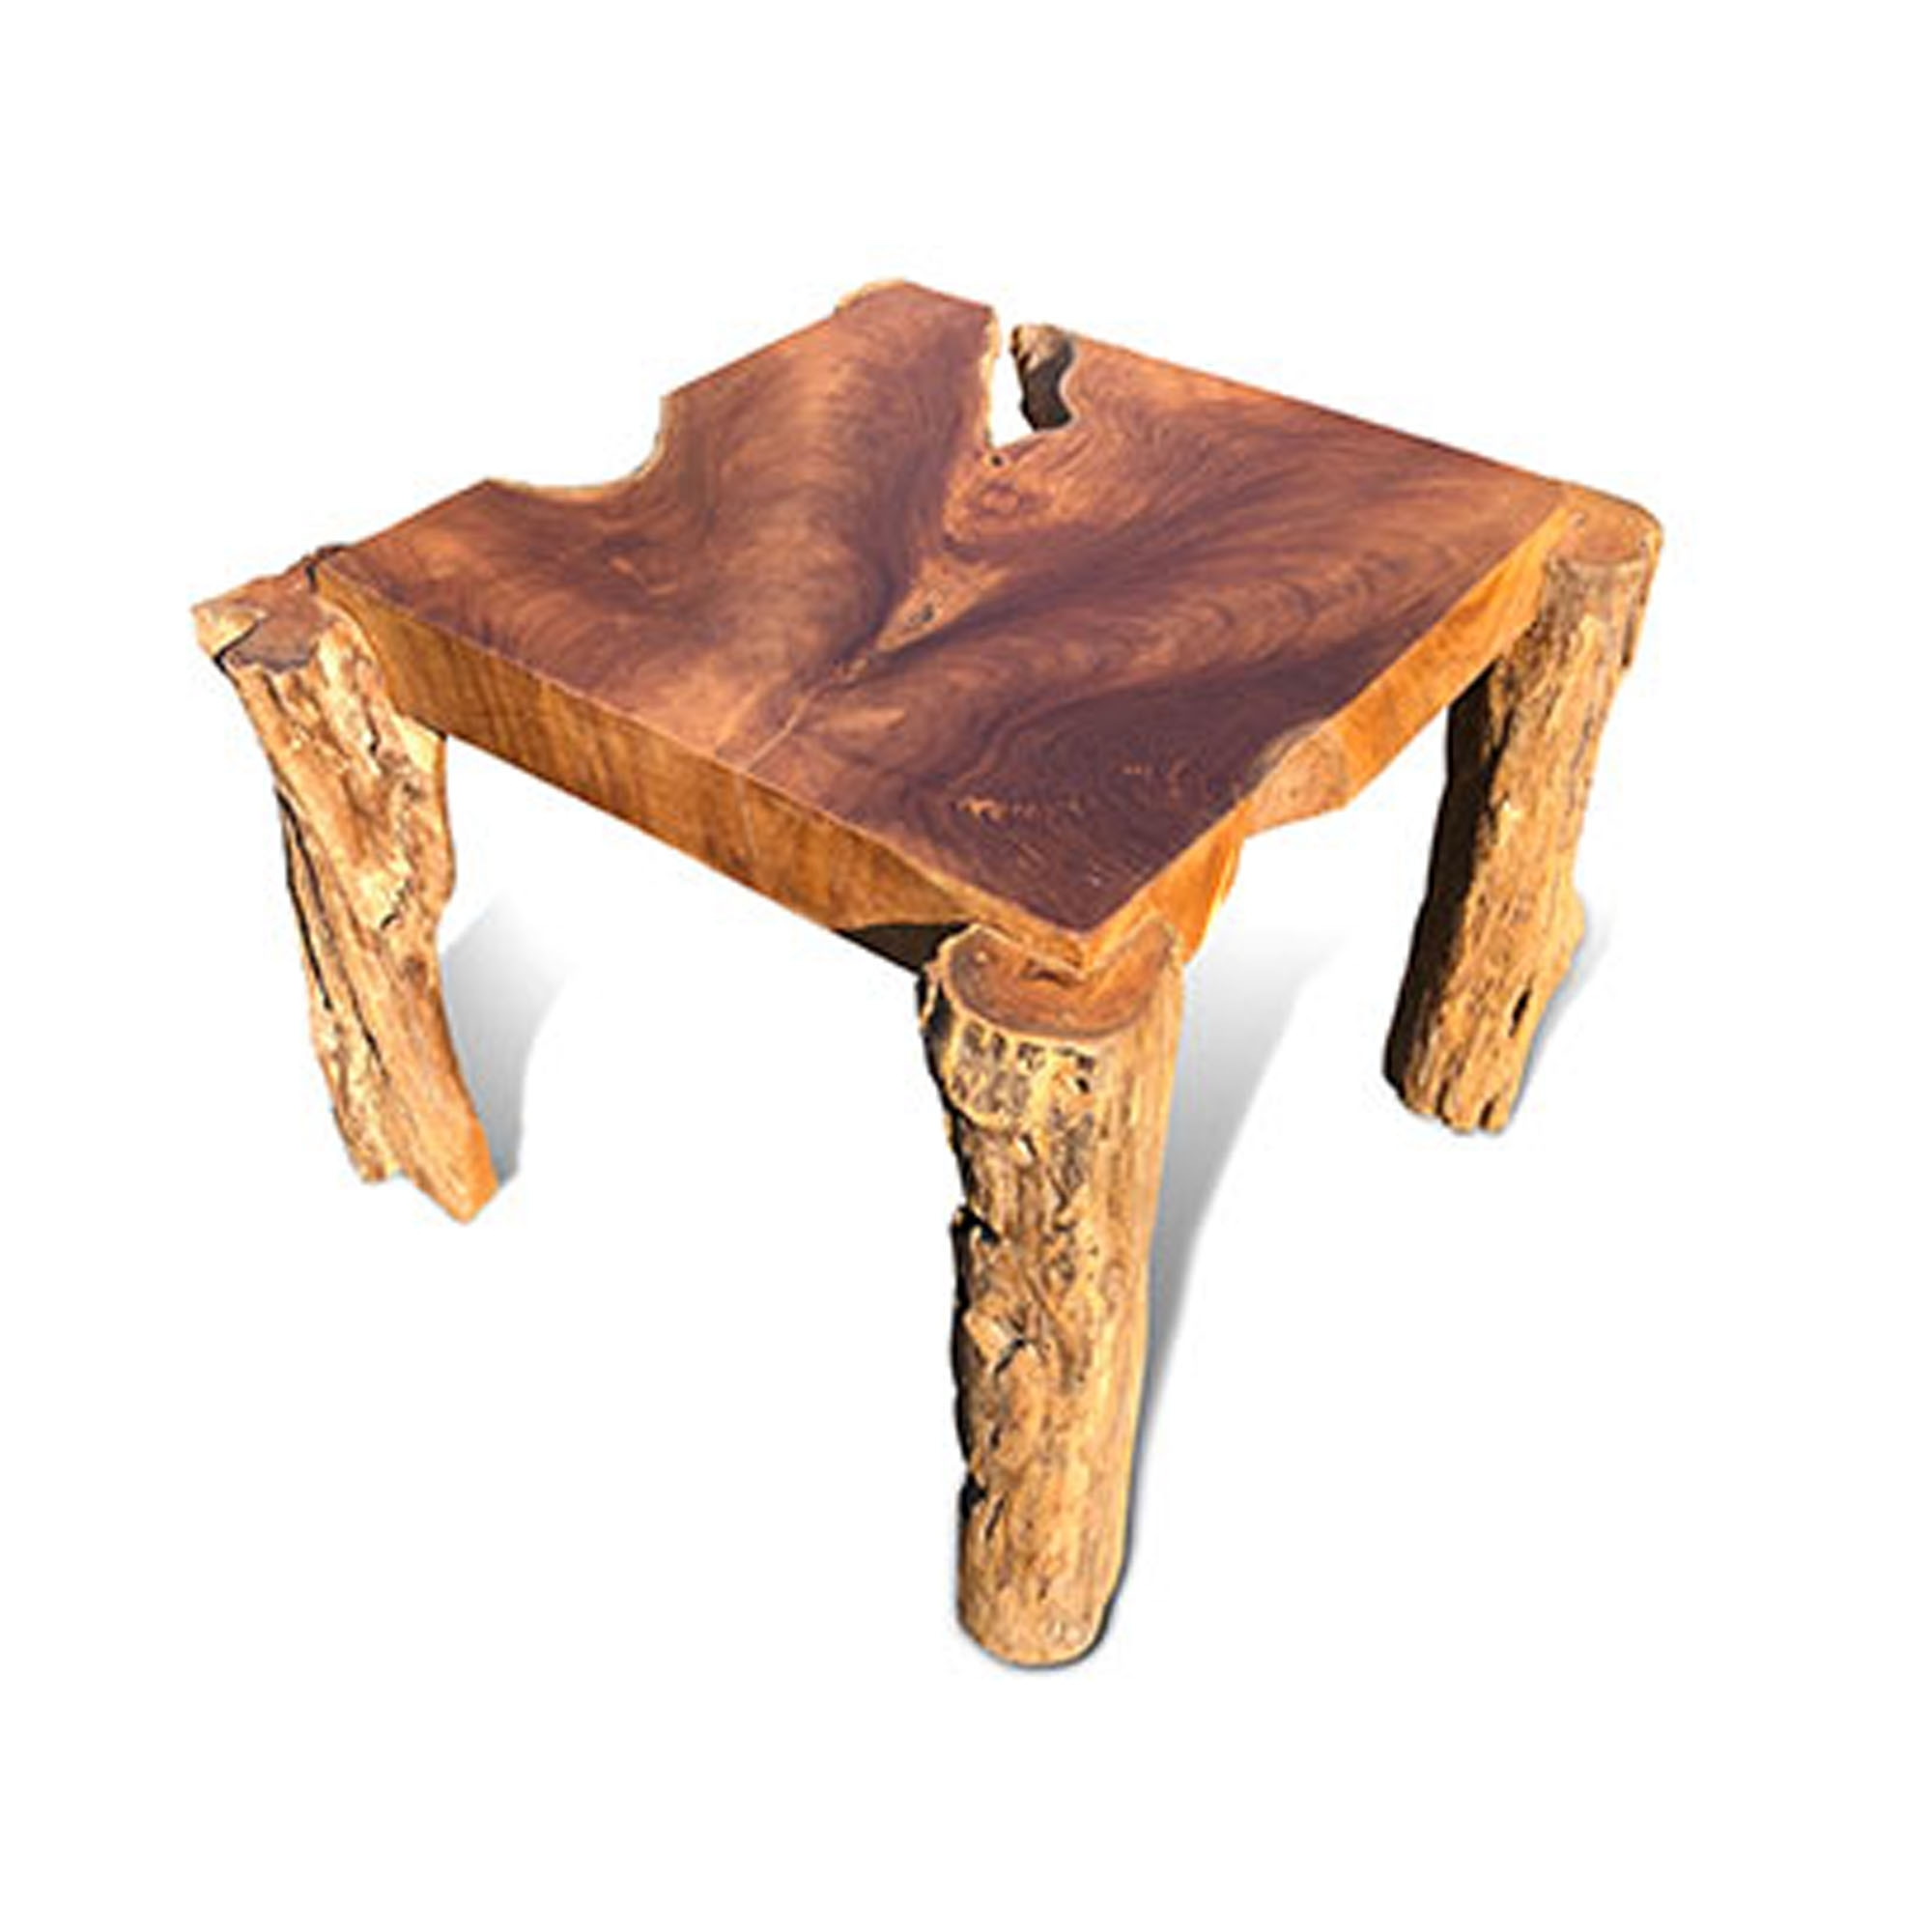 Driftwood Coffee Table Rustic Teak Root Square